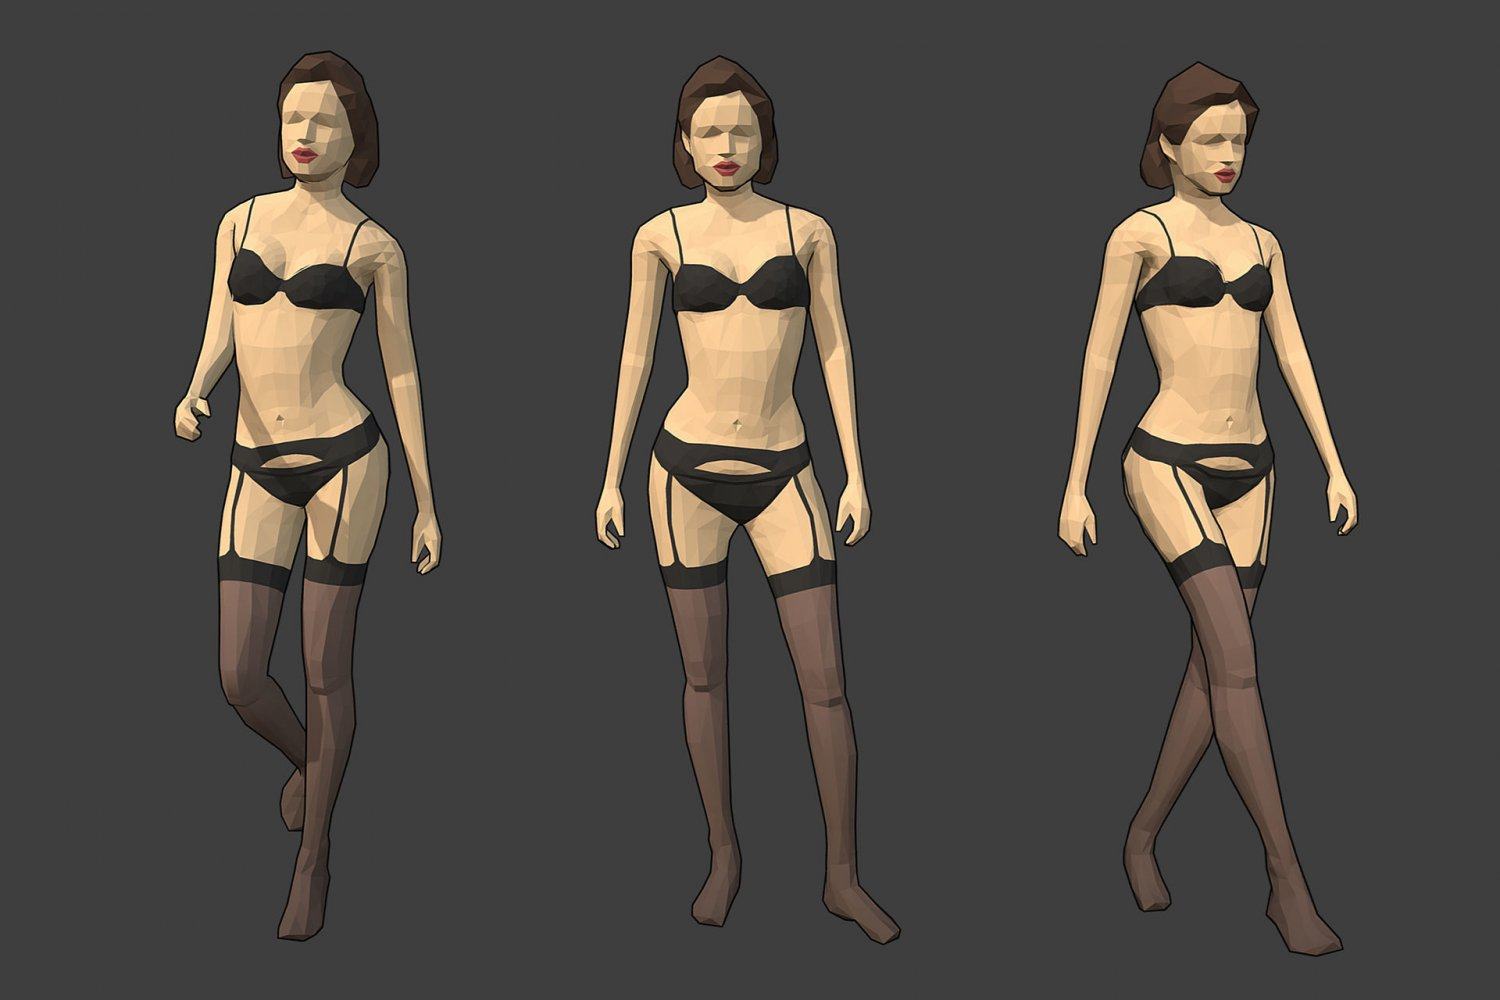 Rigged Lowpoly Female Character - Jane 3D Model in Woman 3DExport